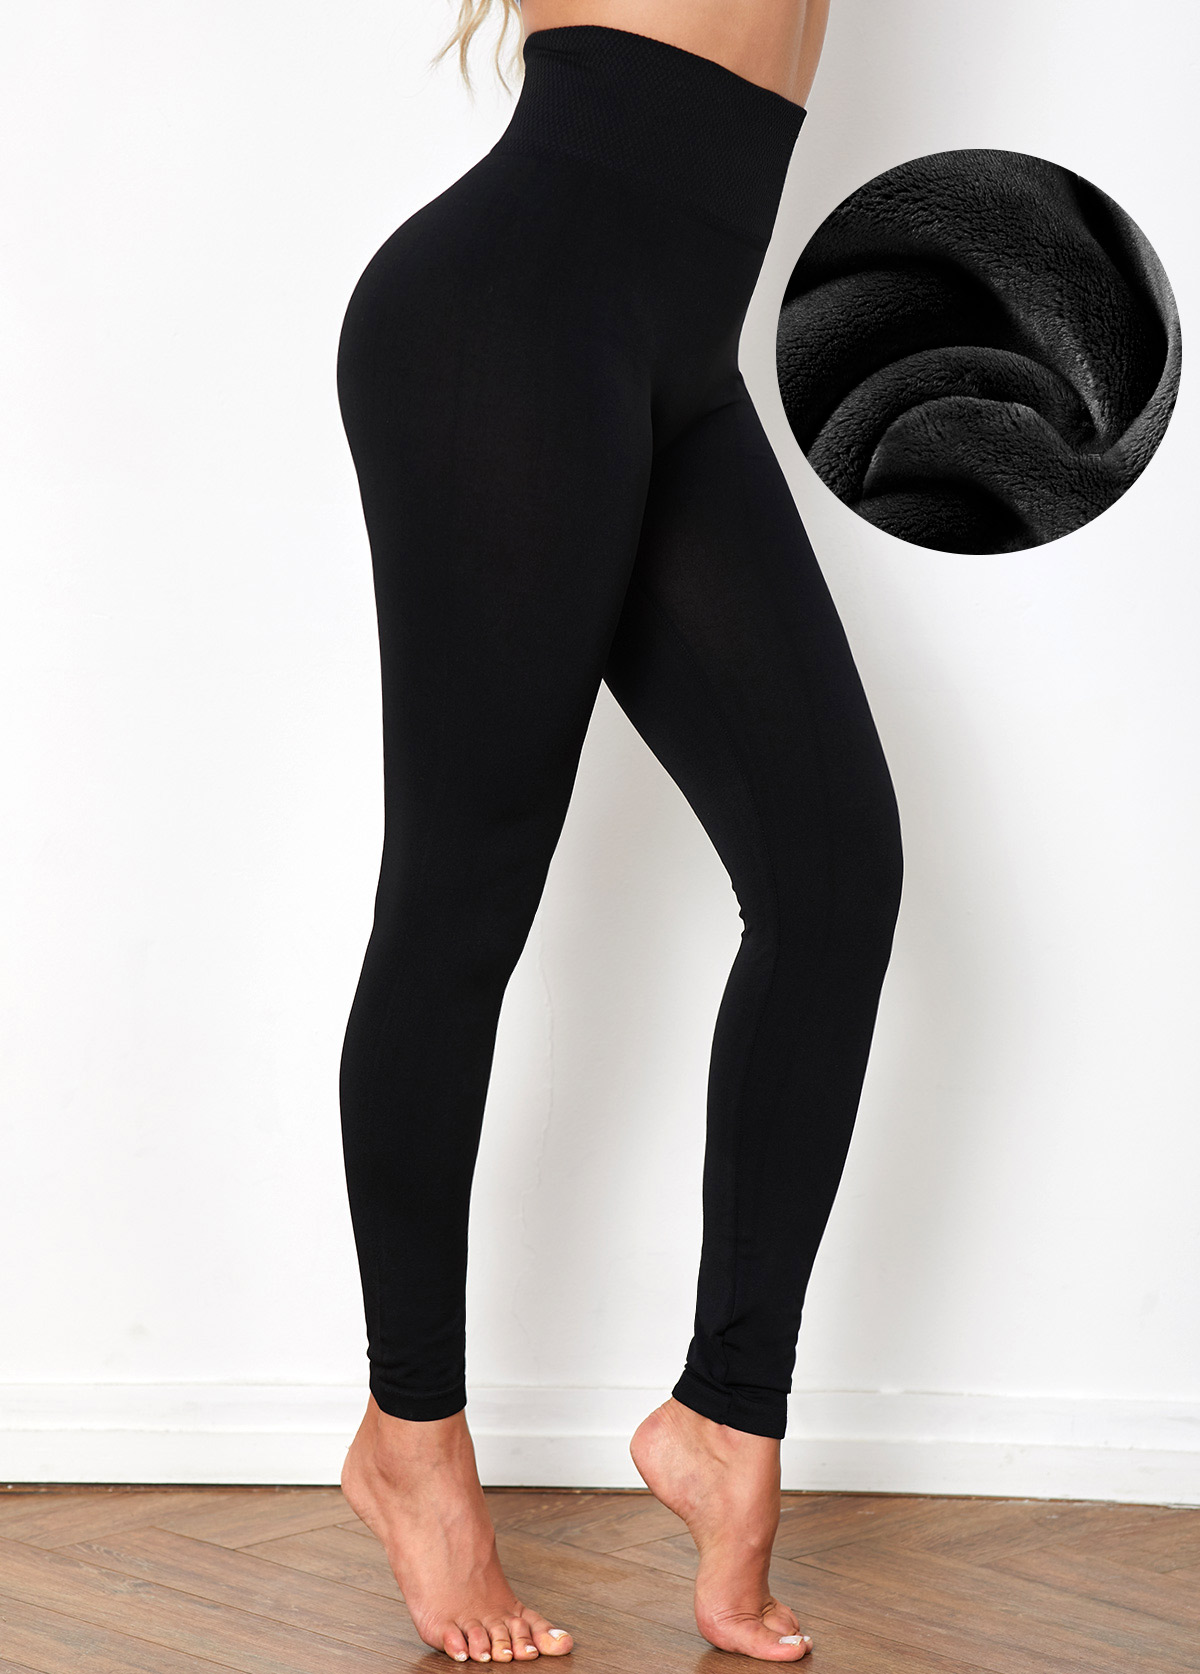 Plush Black High Waist Super Elastic Legging Pants